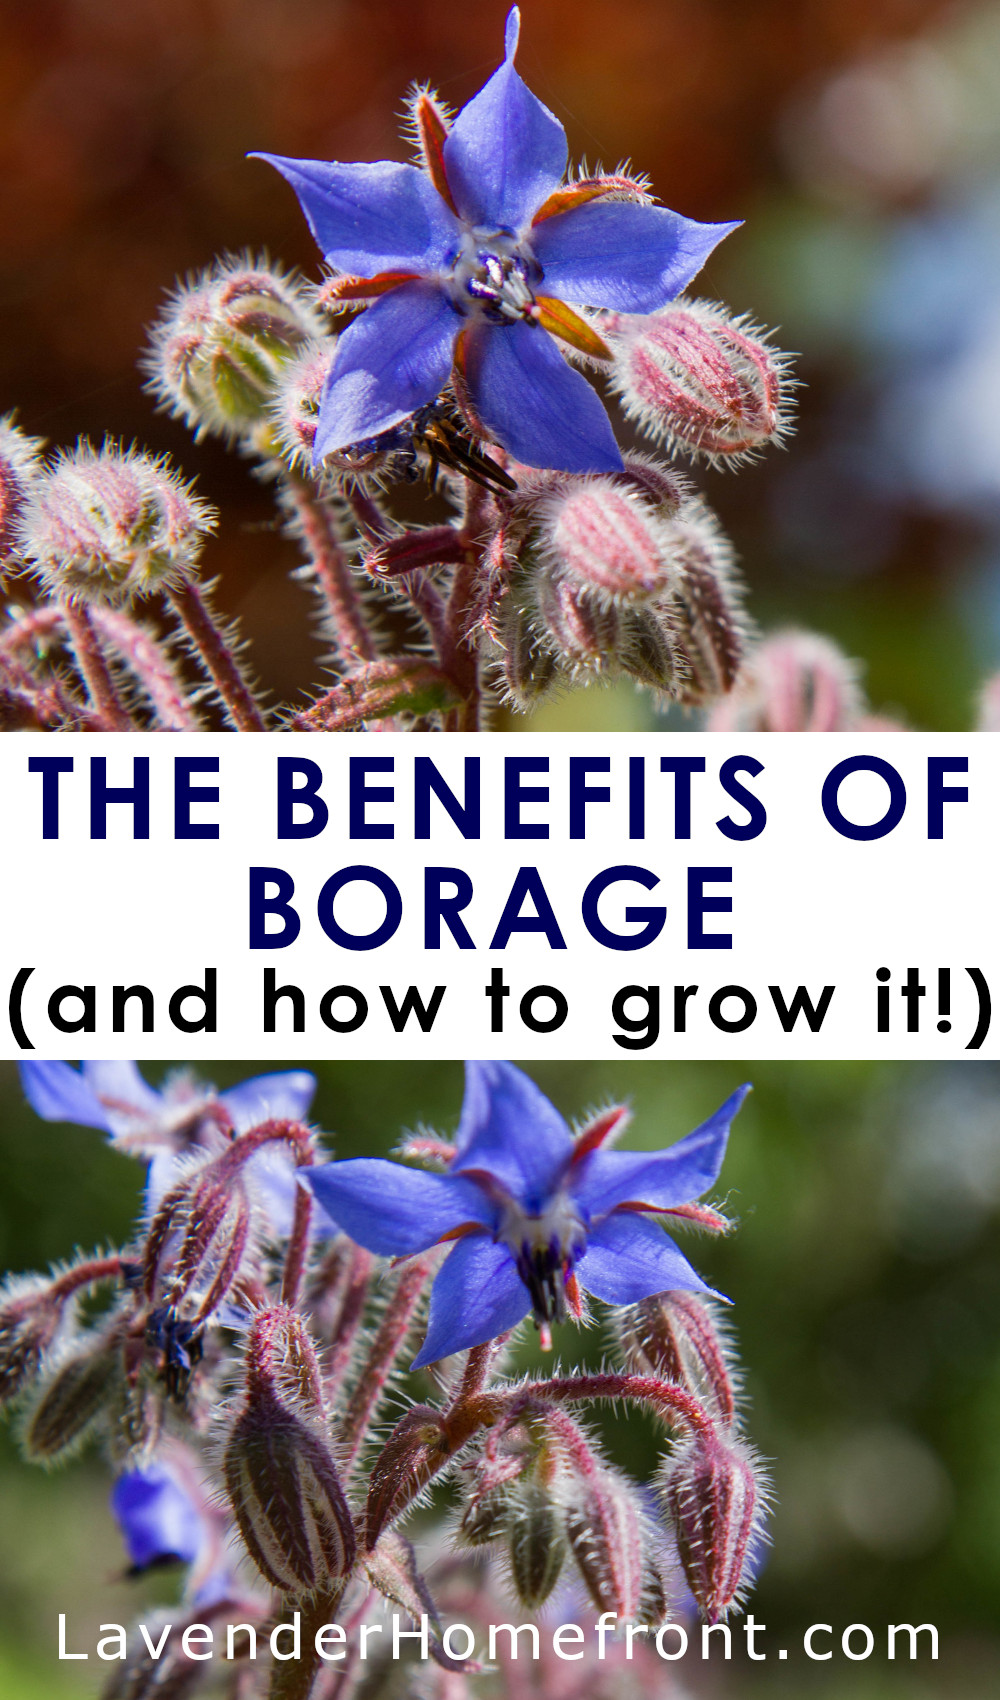 How to grow and why you should grow borage pinnable image with text overlay.